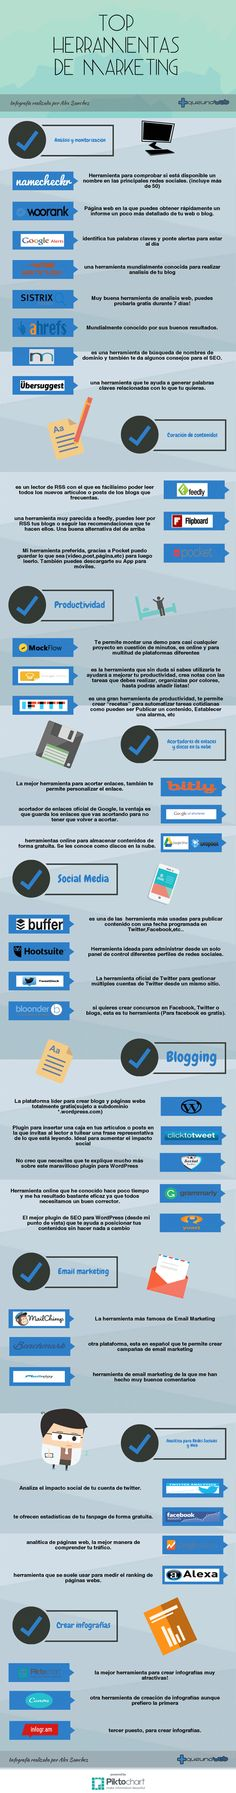 Top 36 herramientas de marketing en Internet #infografia